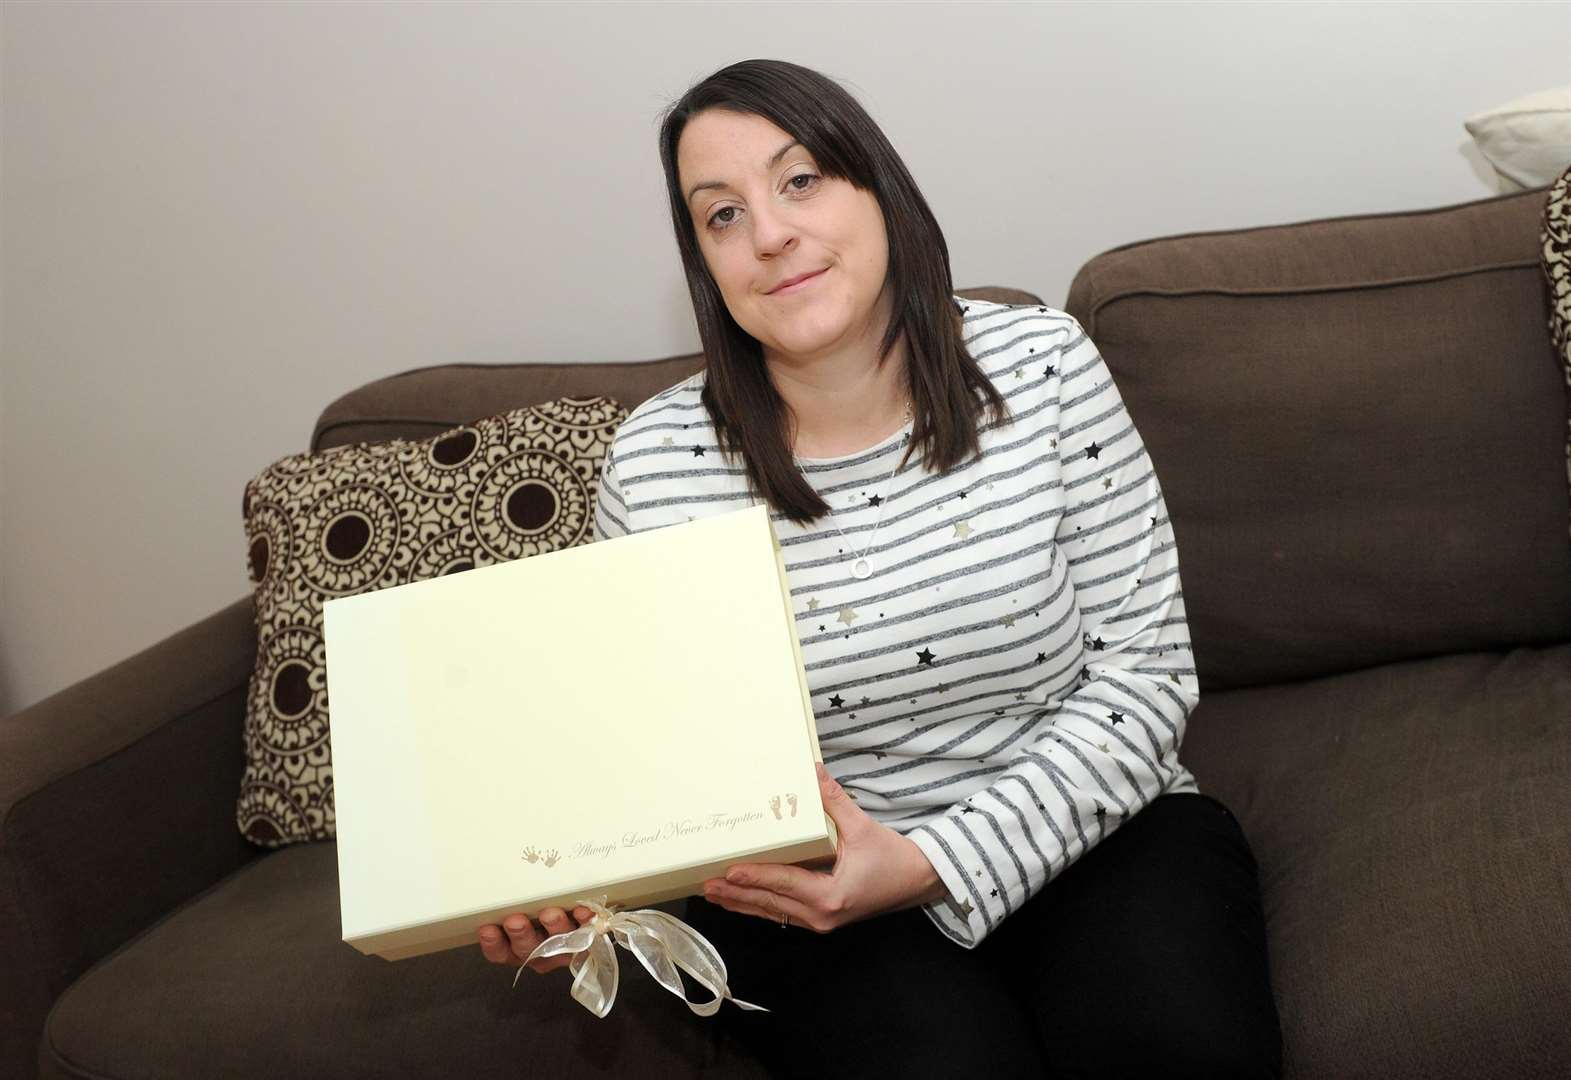 Mum of stillborn channels grief into acts of kindness